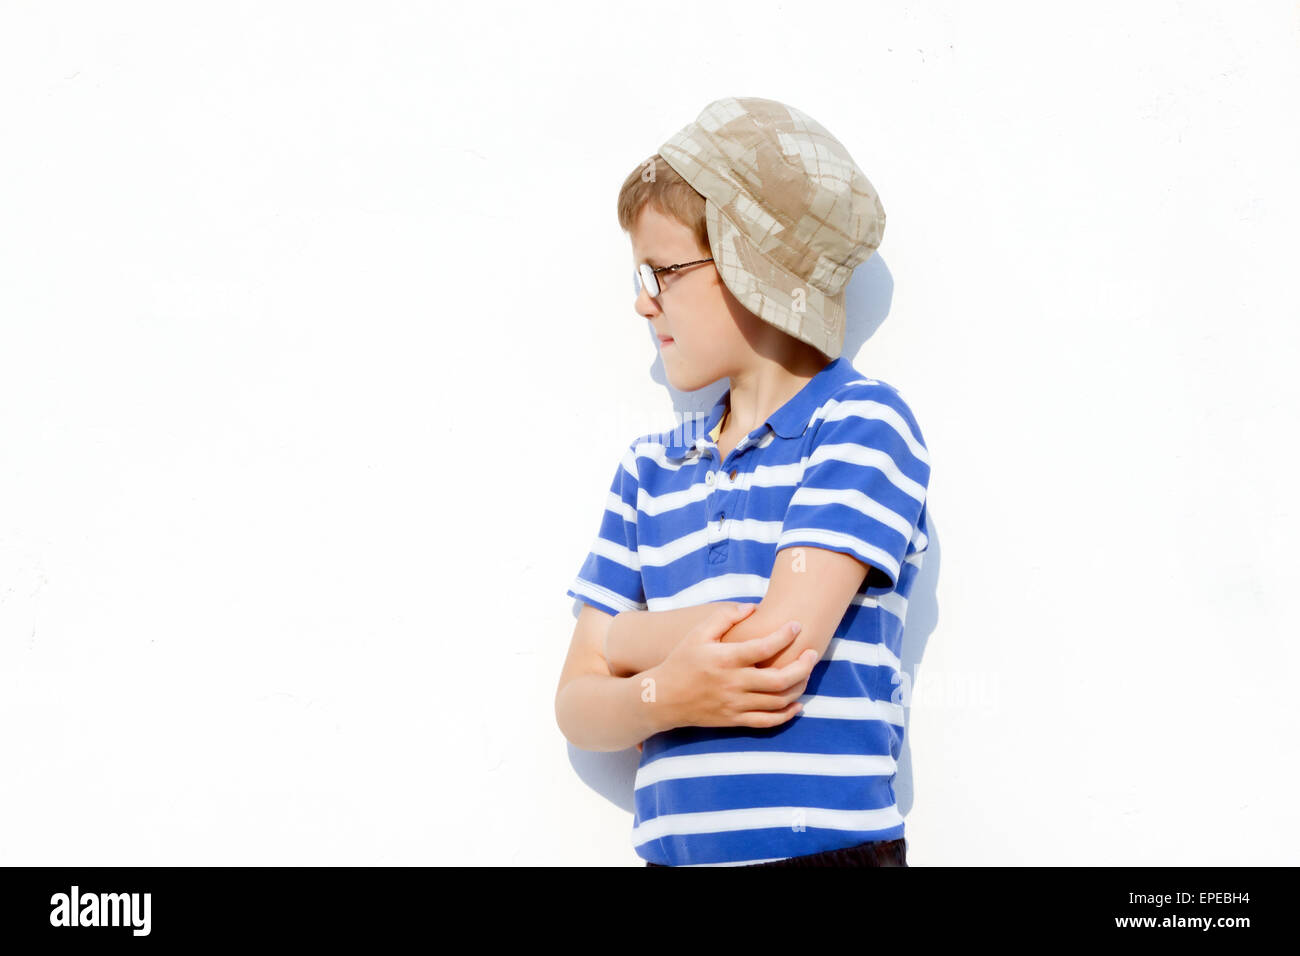 a161975009f2 the little boy a bully in glasses and a cap posing outdoors Stock ...